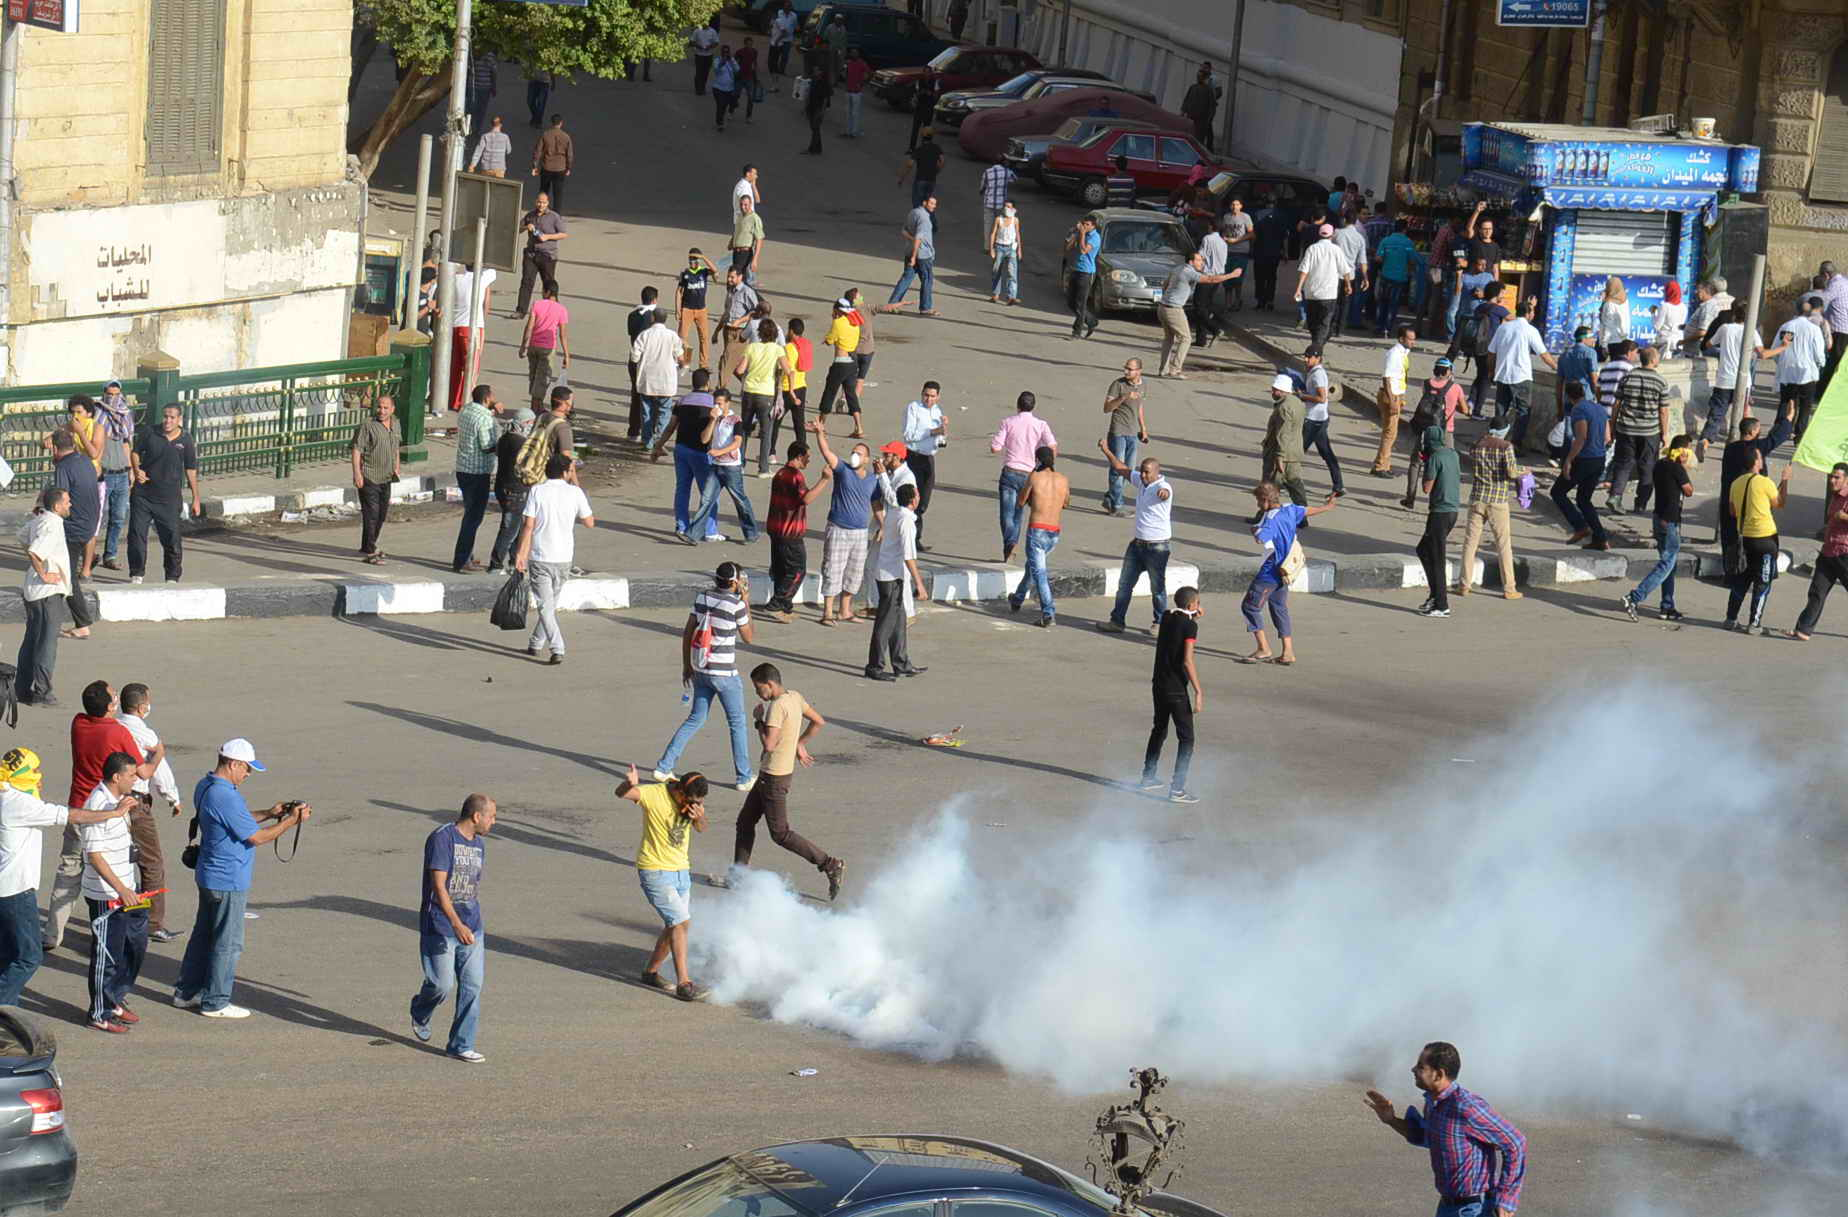 Police fired tear gas as clashes erupted between pro Morsi demonstrators and security forces in downtown Cairo on Friday. (Photo by Ahmed AlMalky/ DNE)